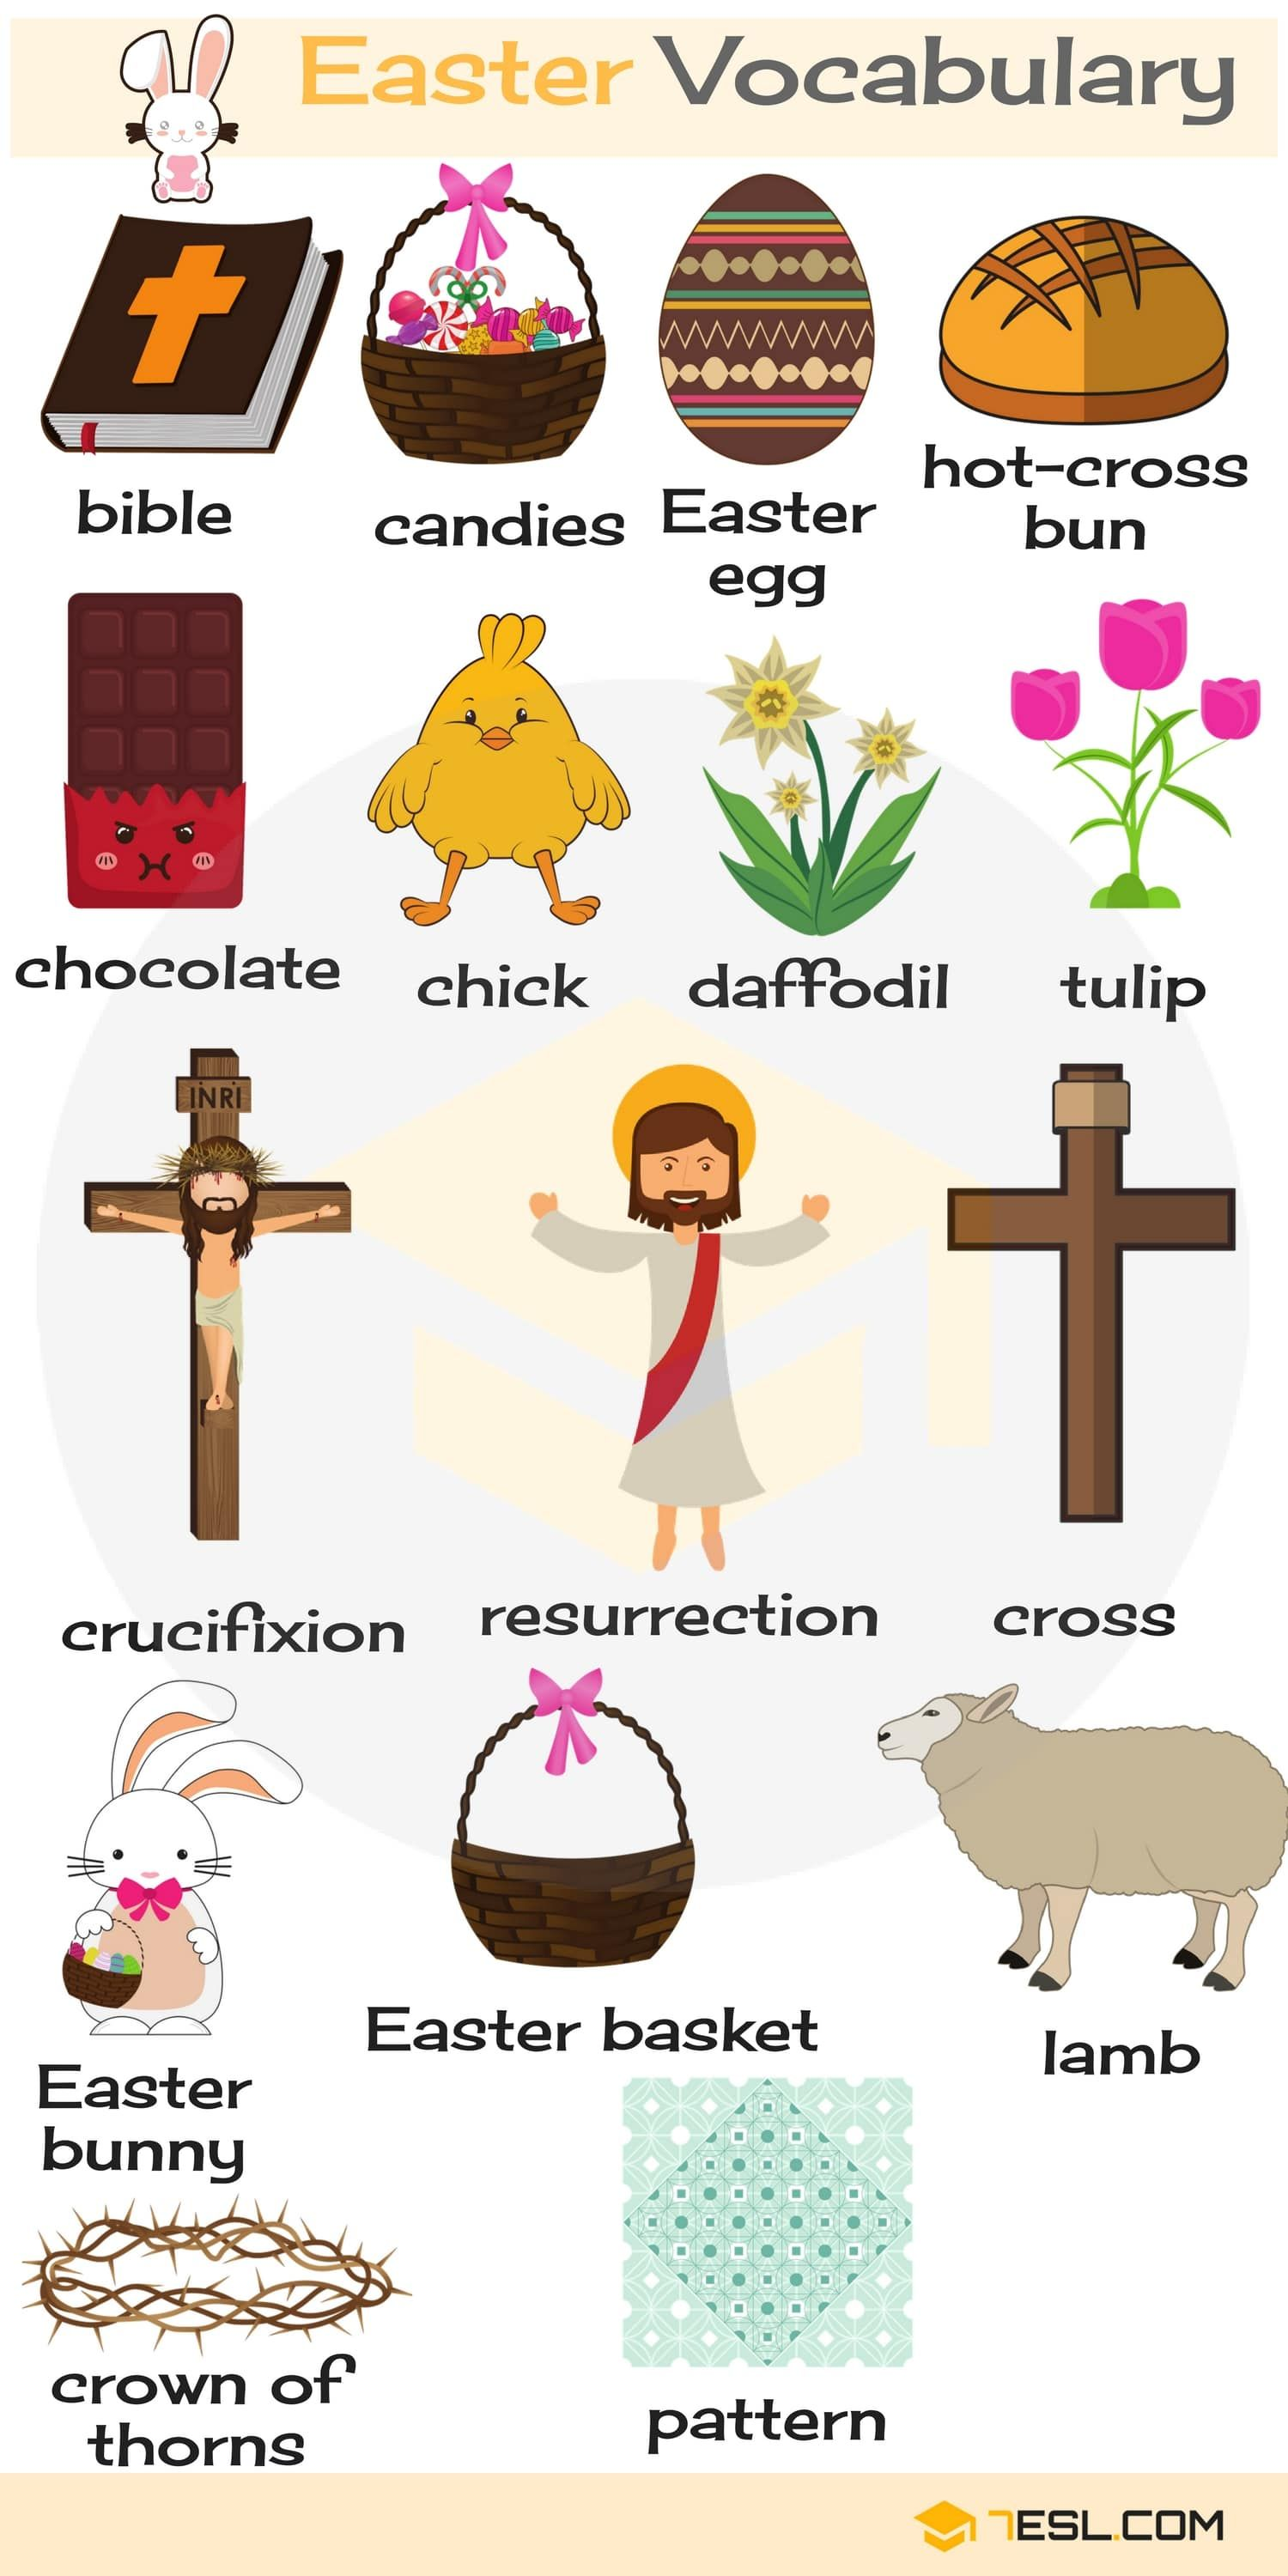 Easter Words Useful Easter Vocabulary Words In English